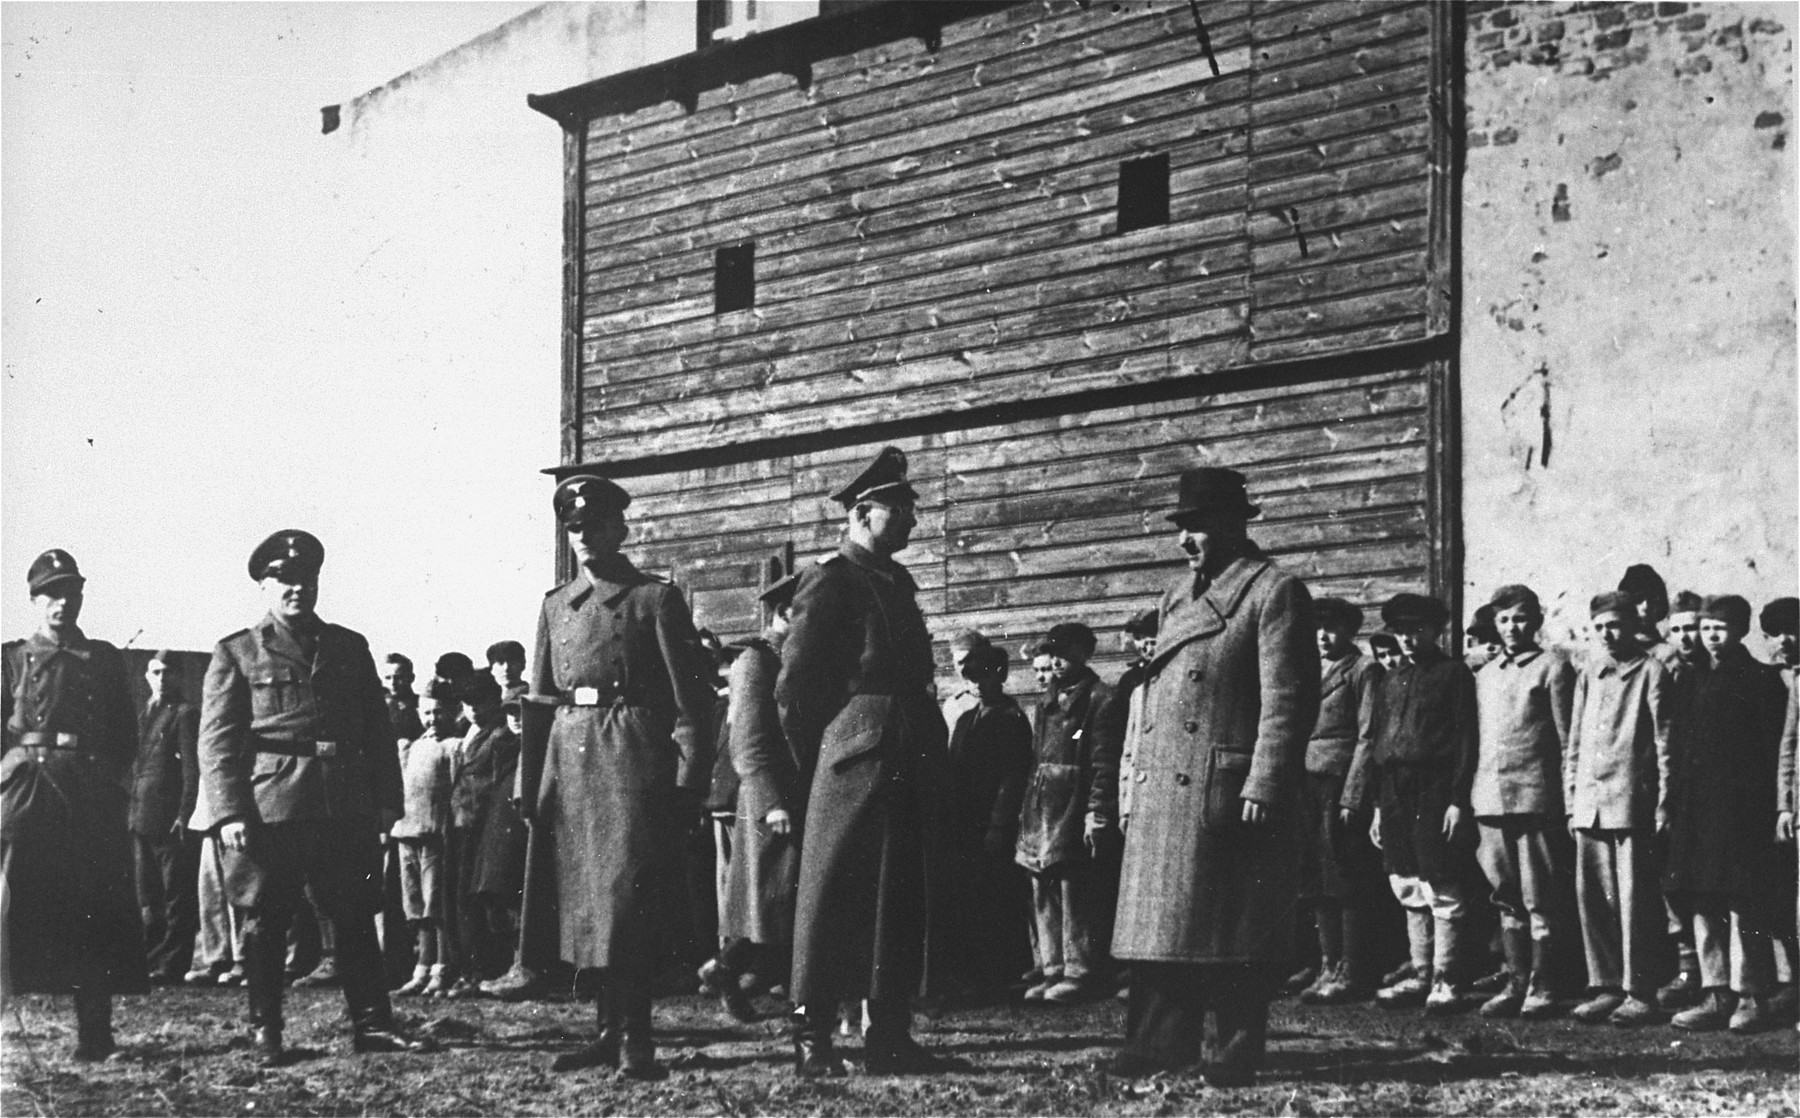 SS officers in front of a group of Polish youth and children during a roll call in the Jugendschutzlager Litzmannstadt.